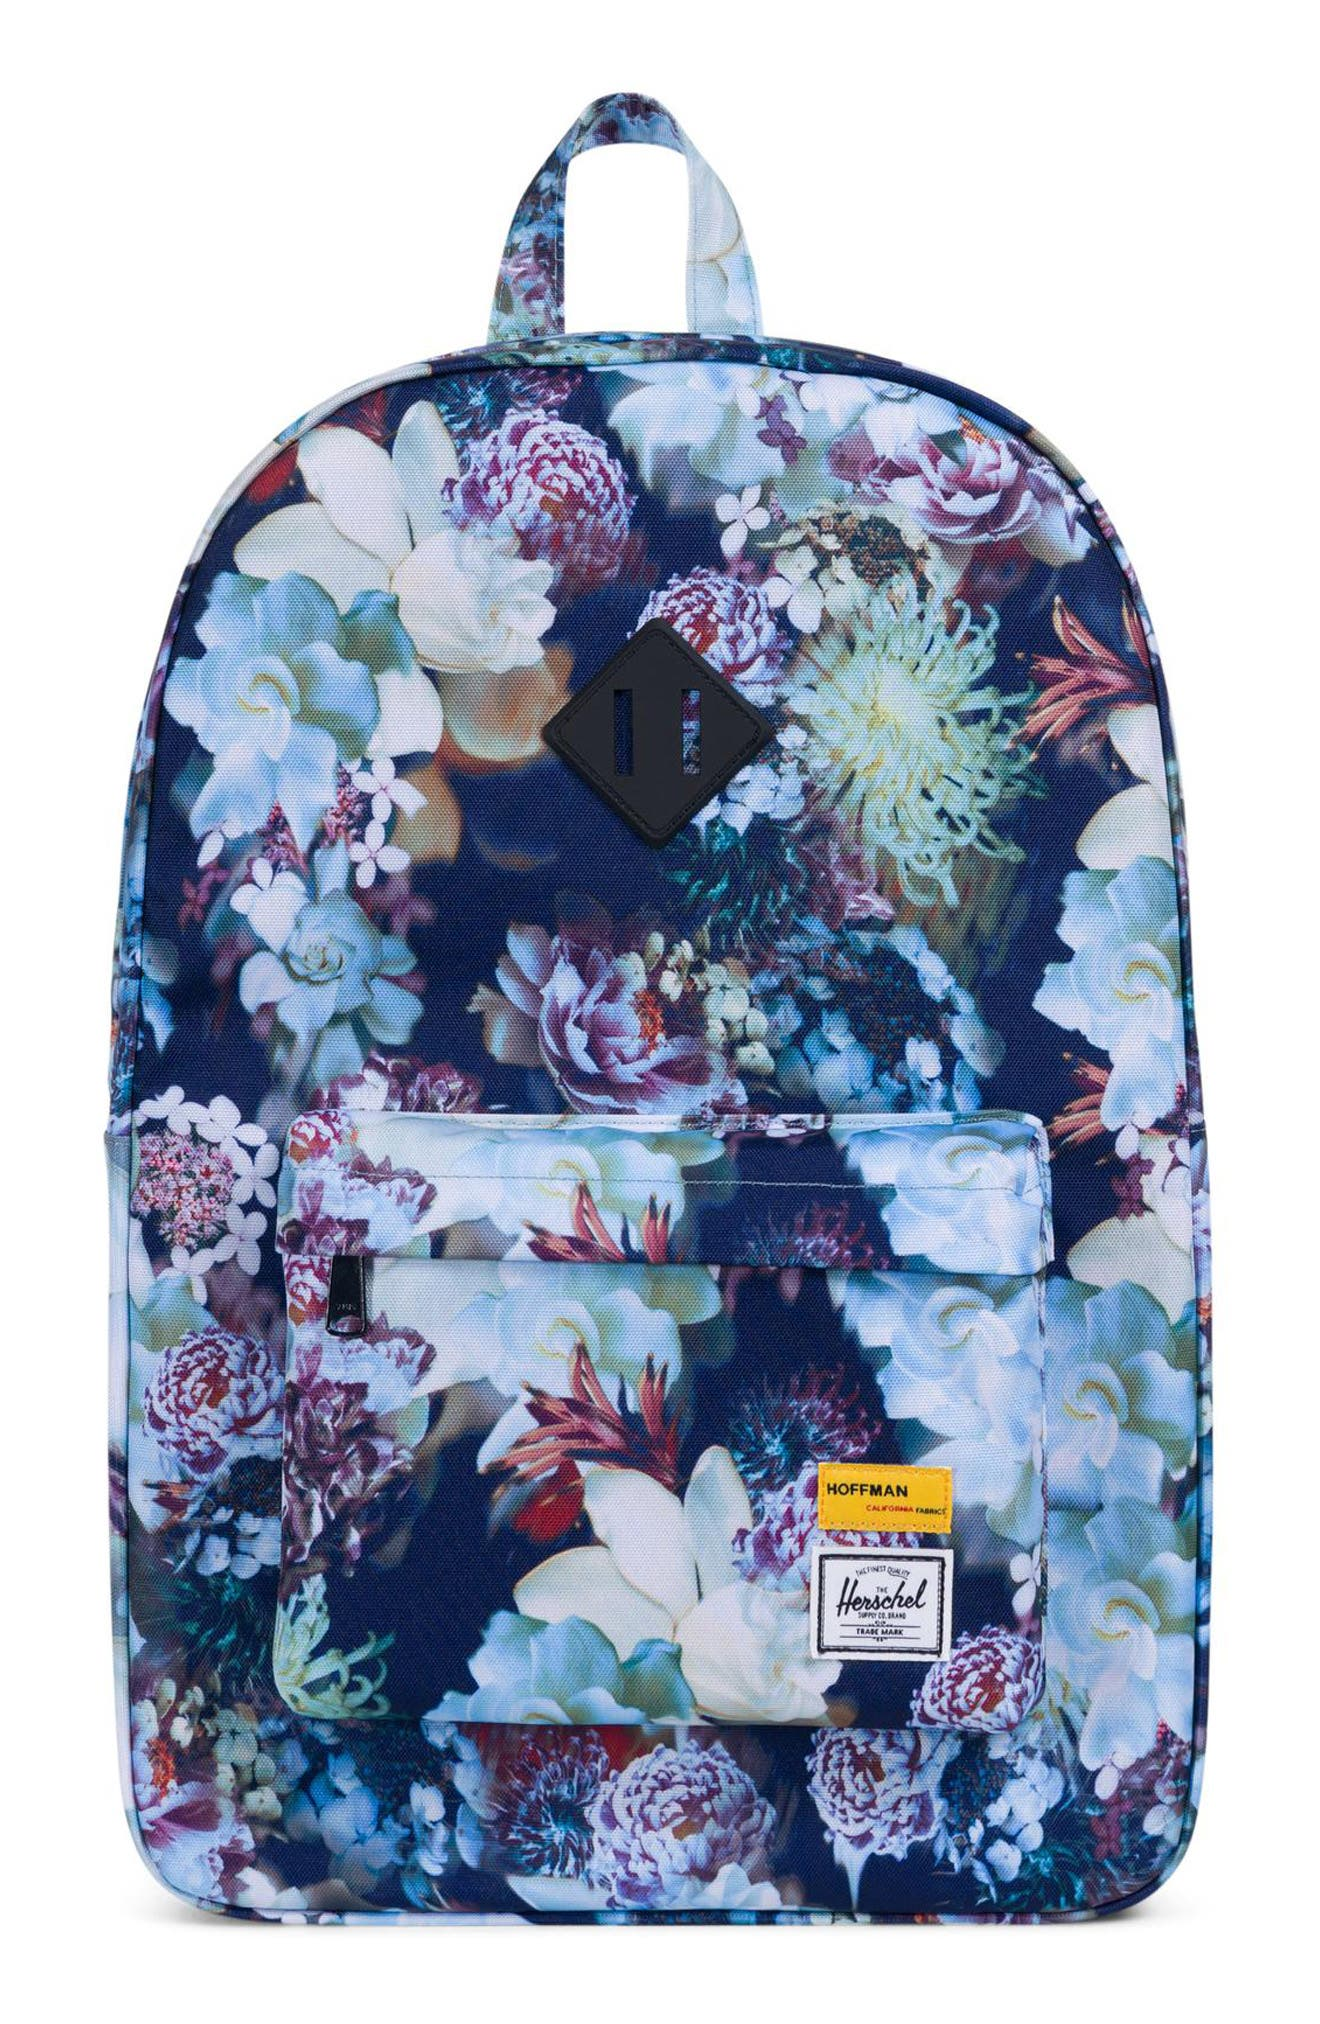 Heritage Hoffman Backpack,                             Main thumbnail 1, color,                             WINTER FLORAL